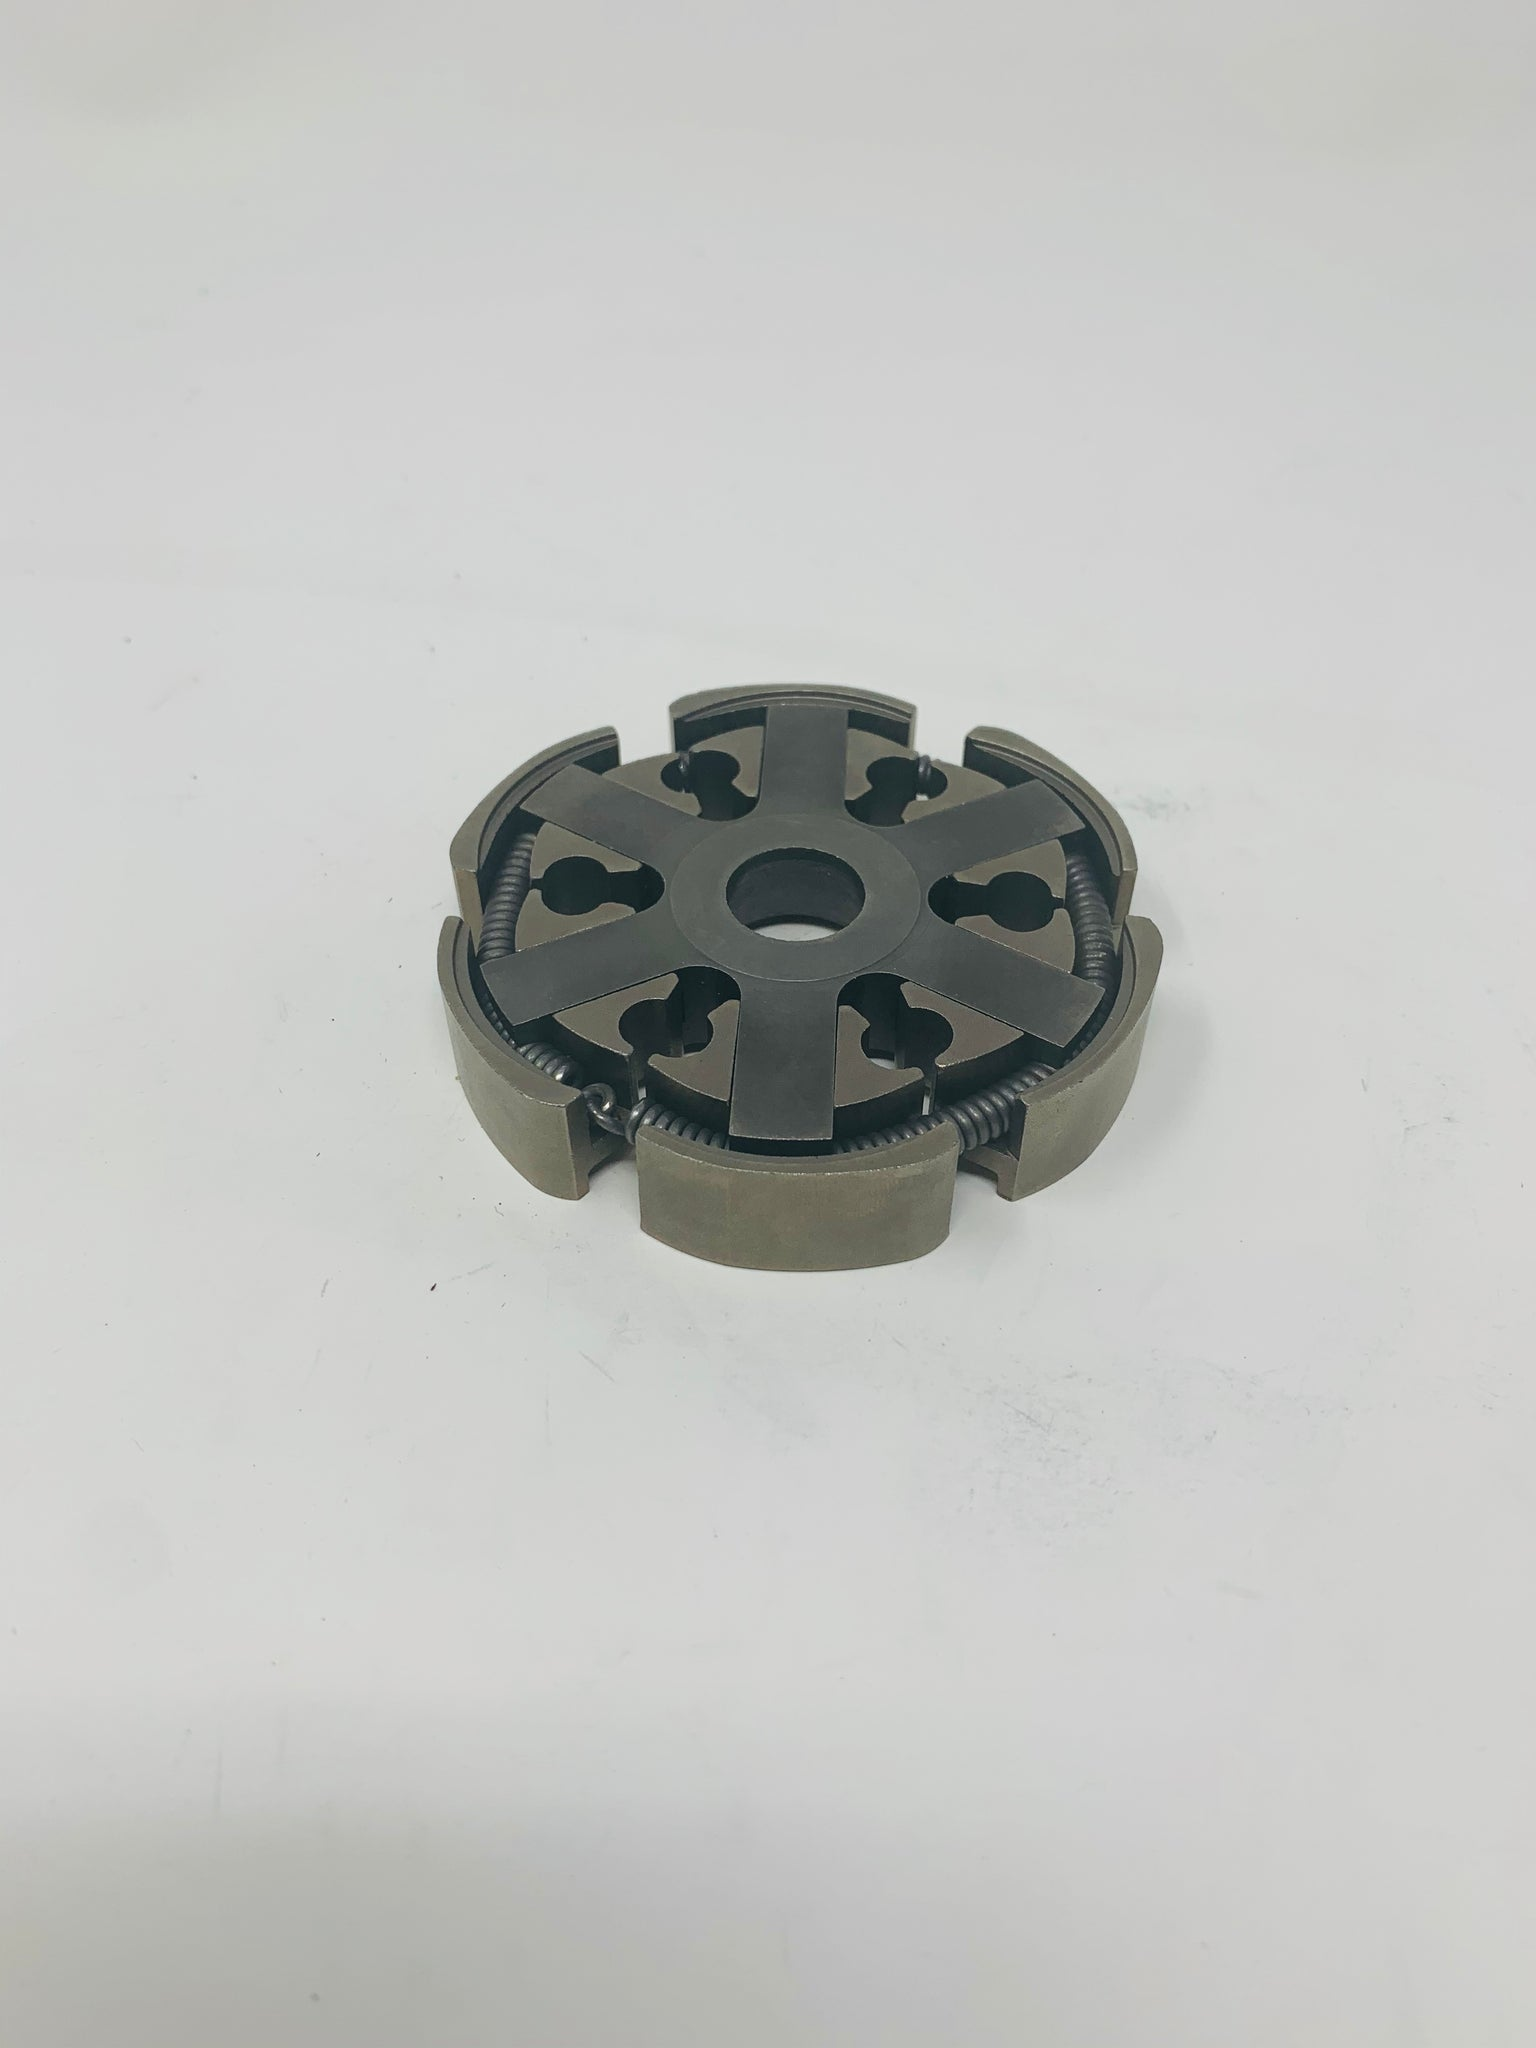 Complete Clutch for Air Conception Tornado 280